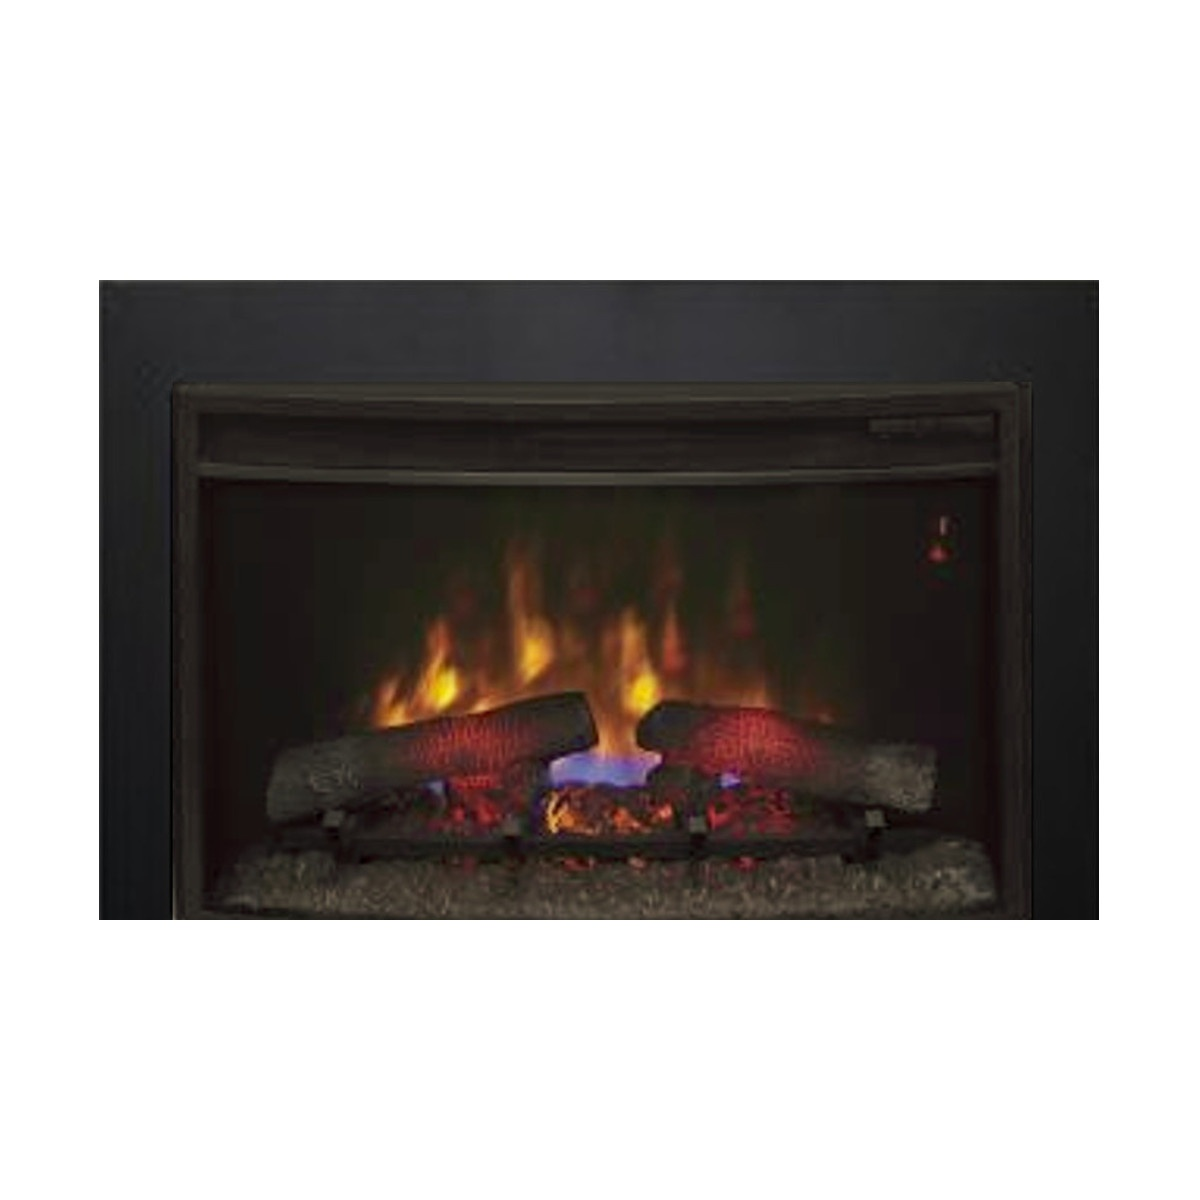 Classic Flame 26 26ef031grp Electric Fireplace Insert W